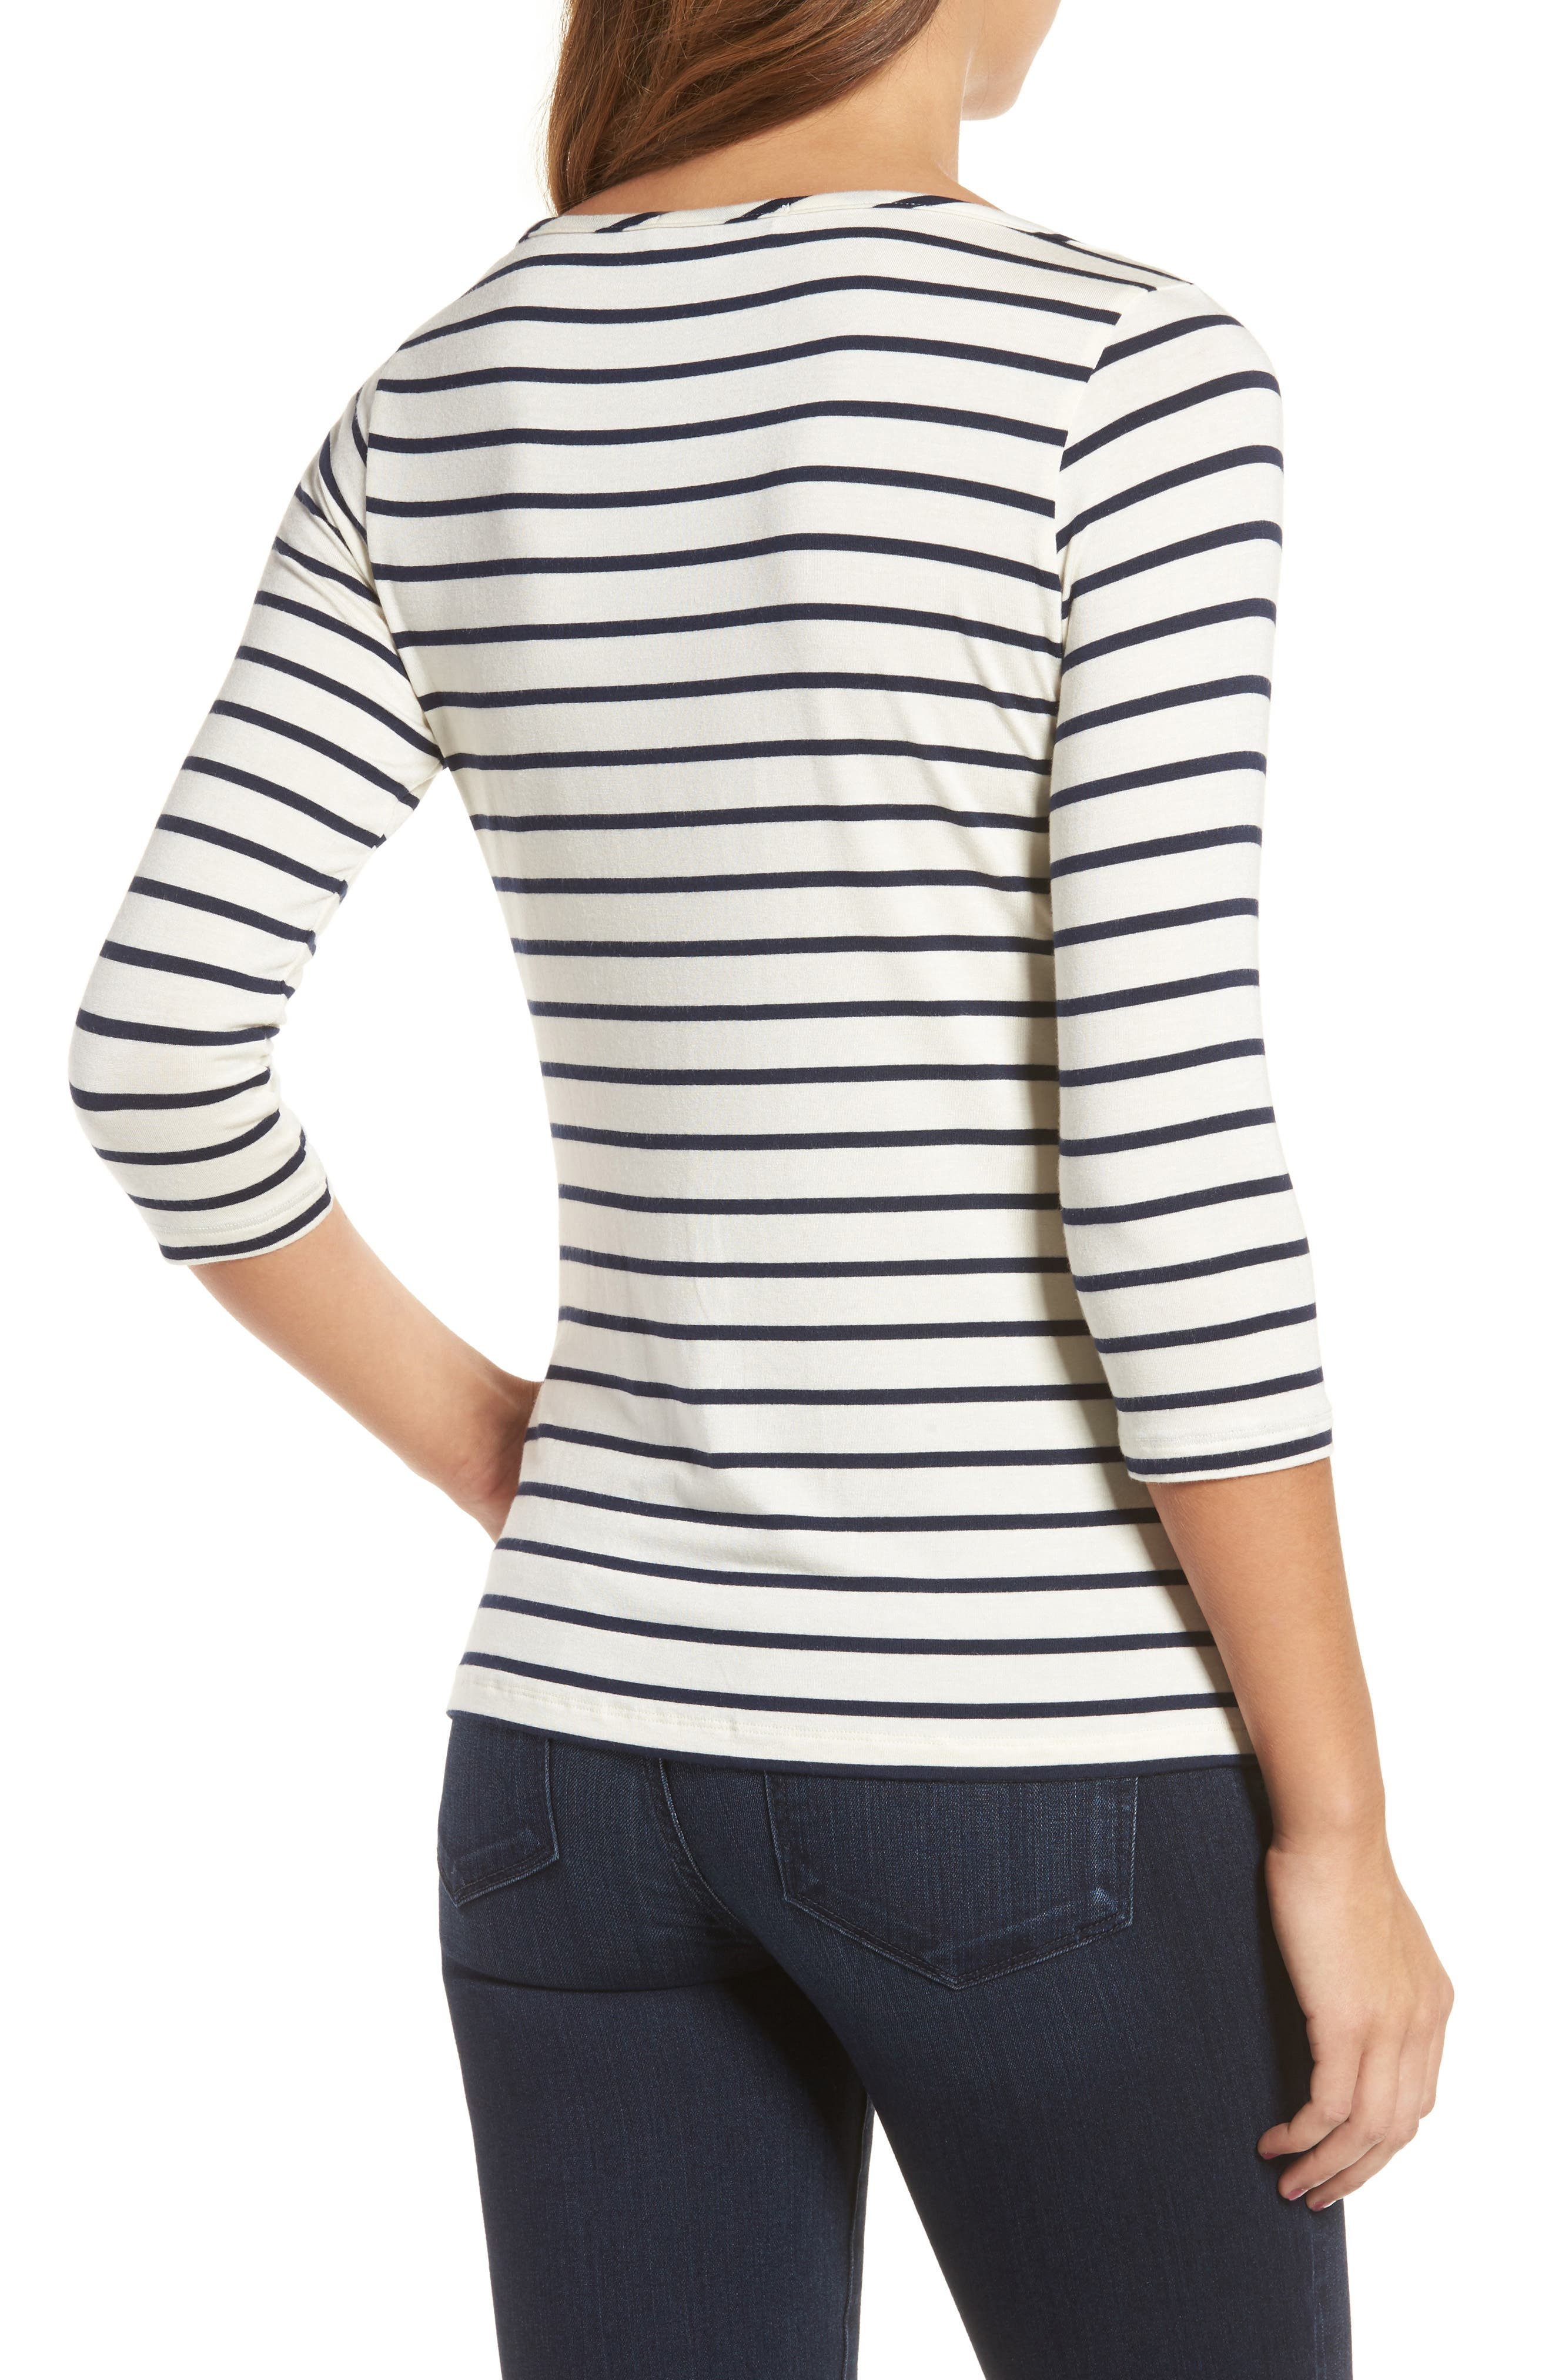 Francoise Stretch Jersey Top,                             Alternate thumbnail 2, color,                             MARINE STRIPE